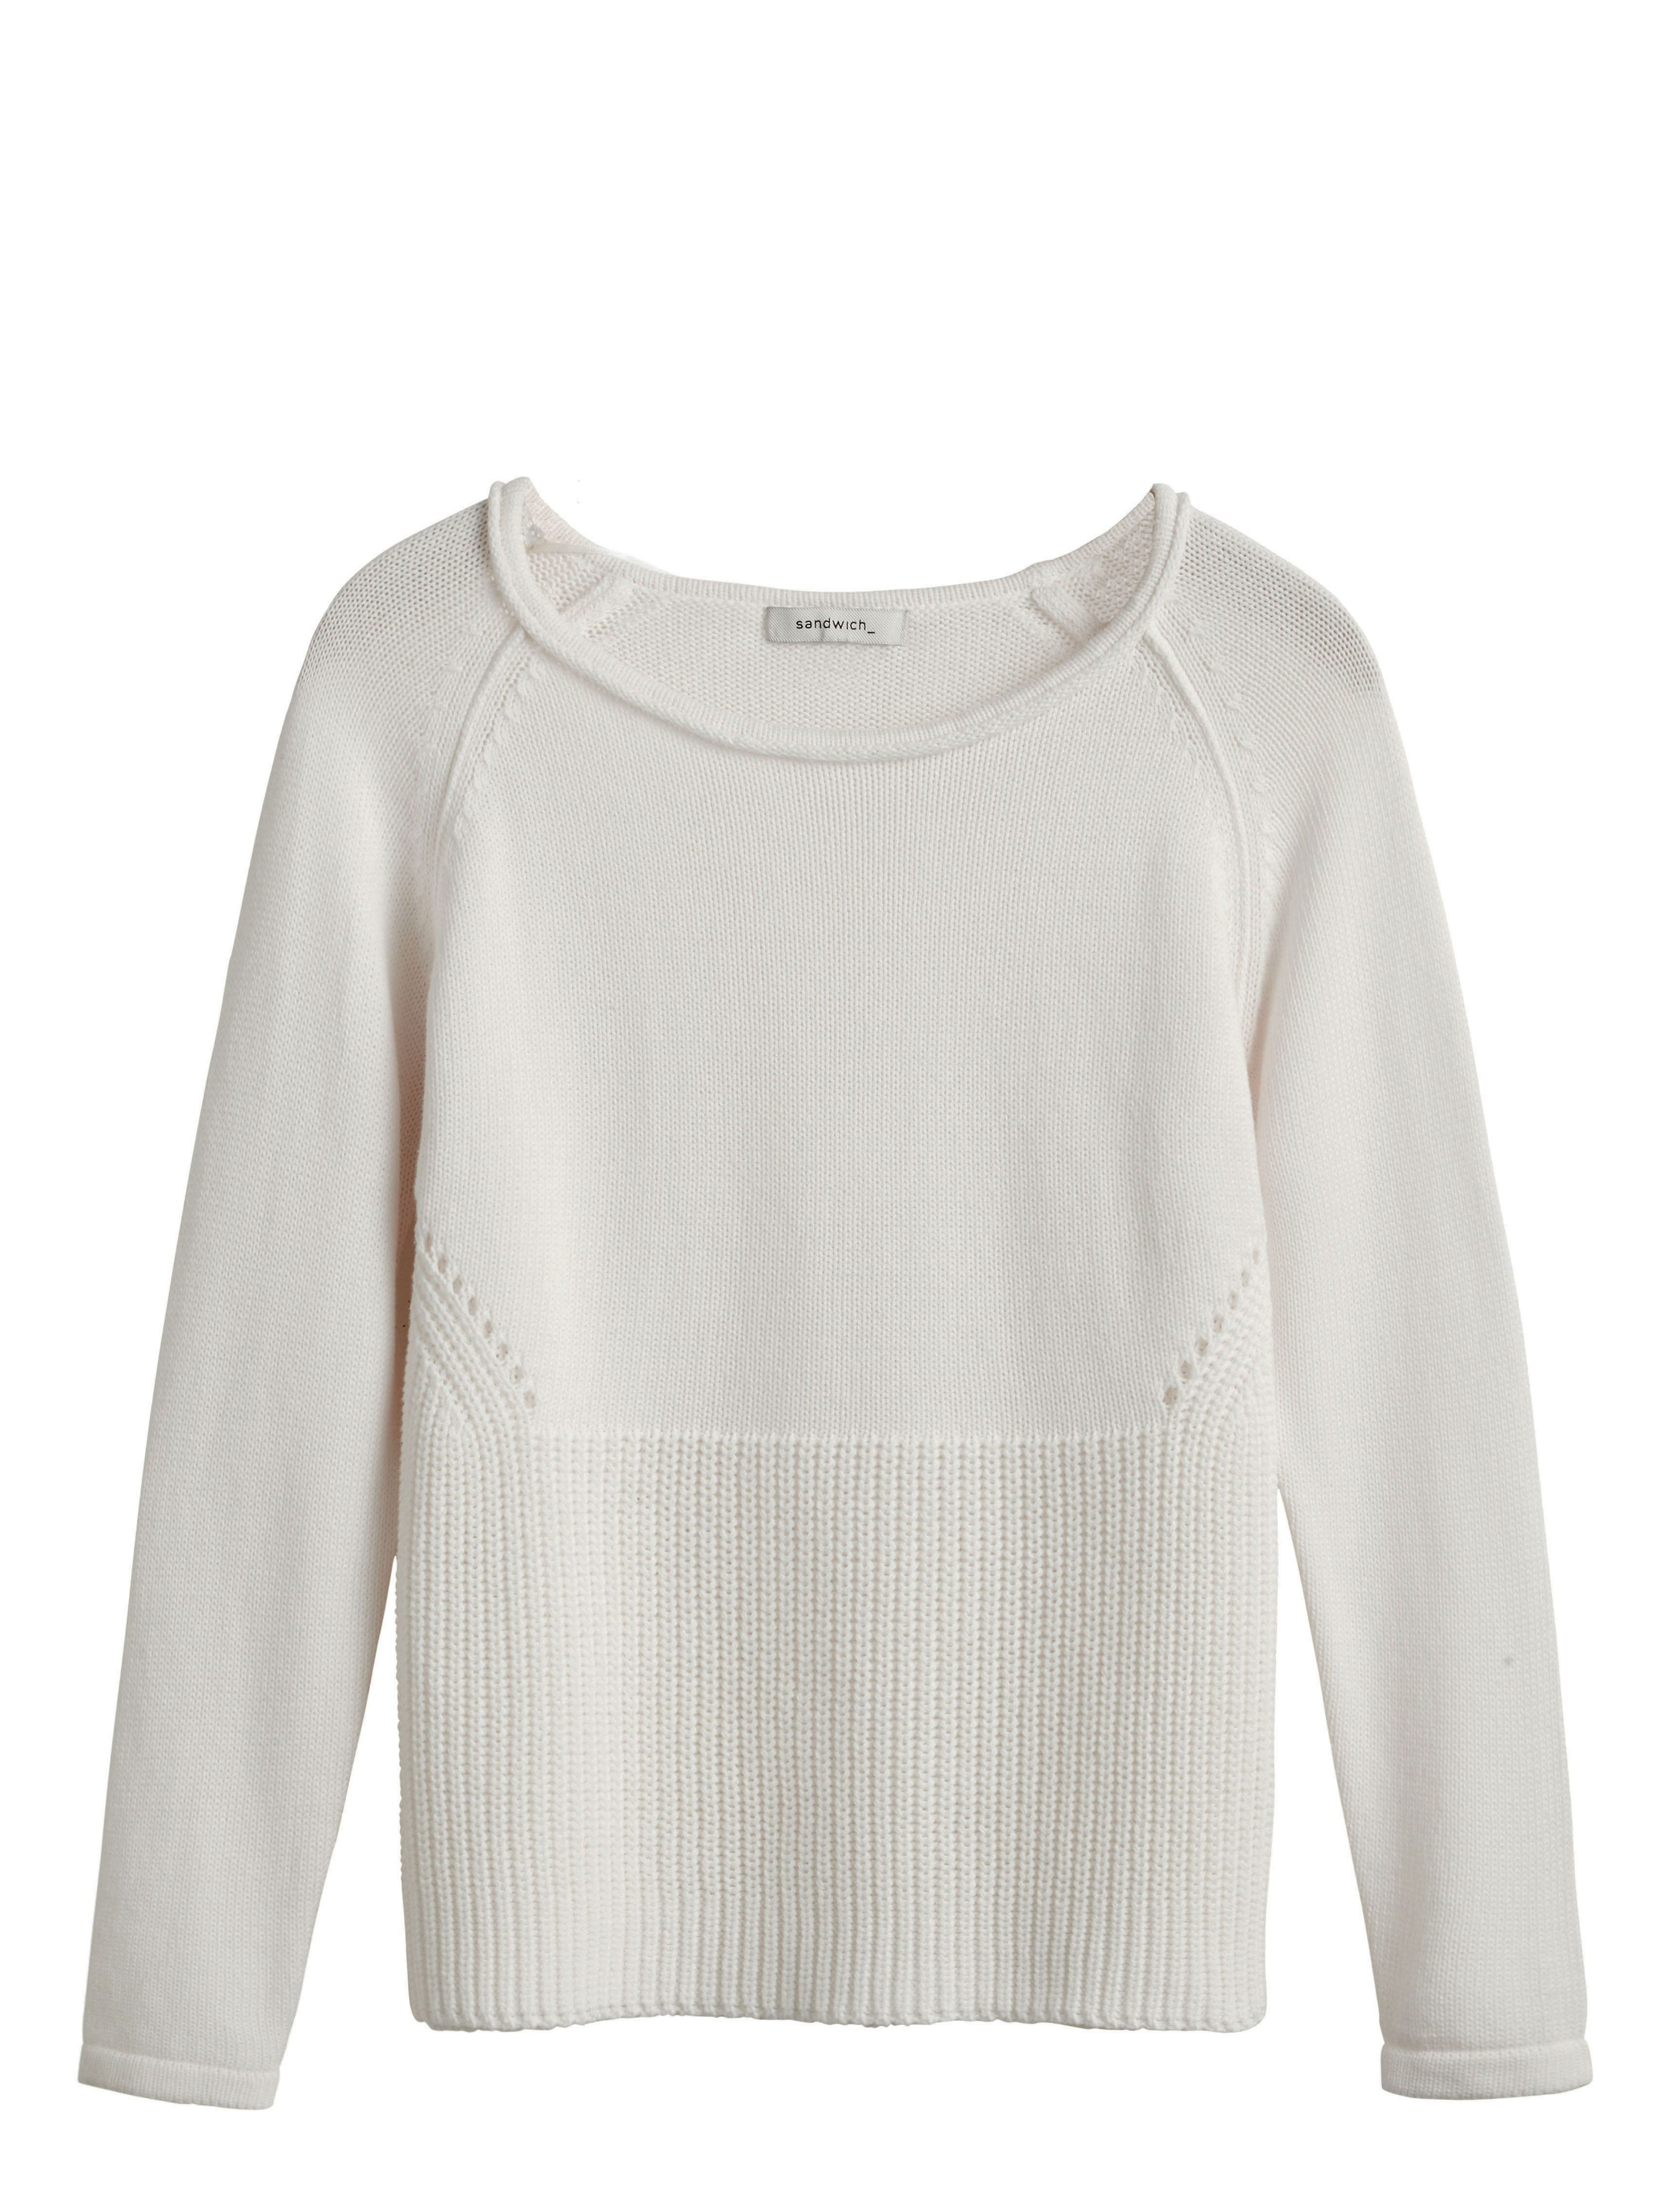 Find white cotton sweater from a vast selection of Women's Clothing and Sweaters. Get great deals on eBay!